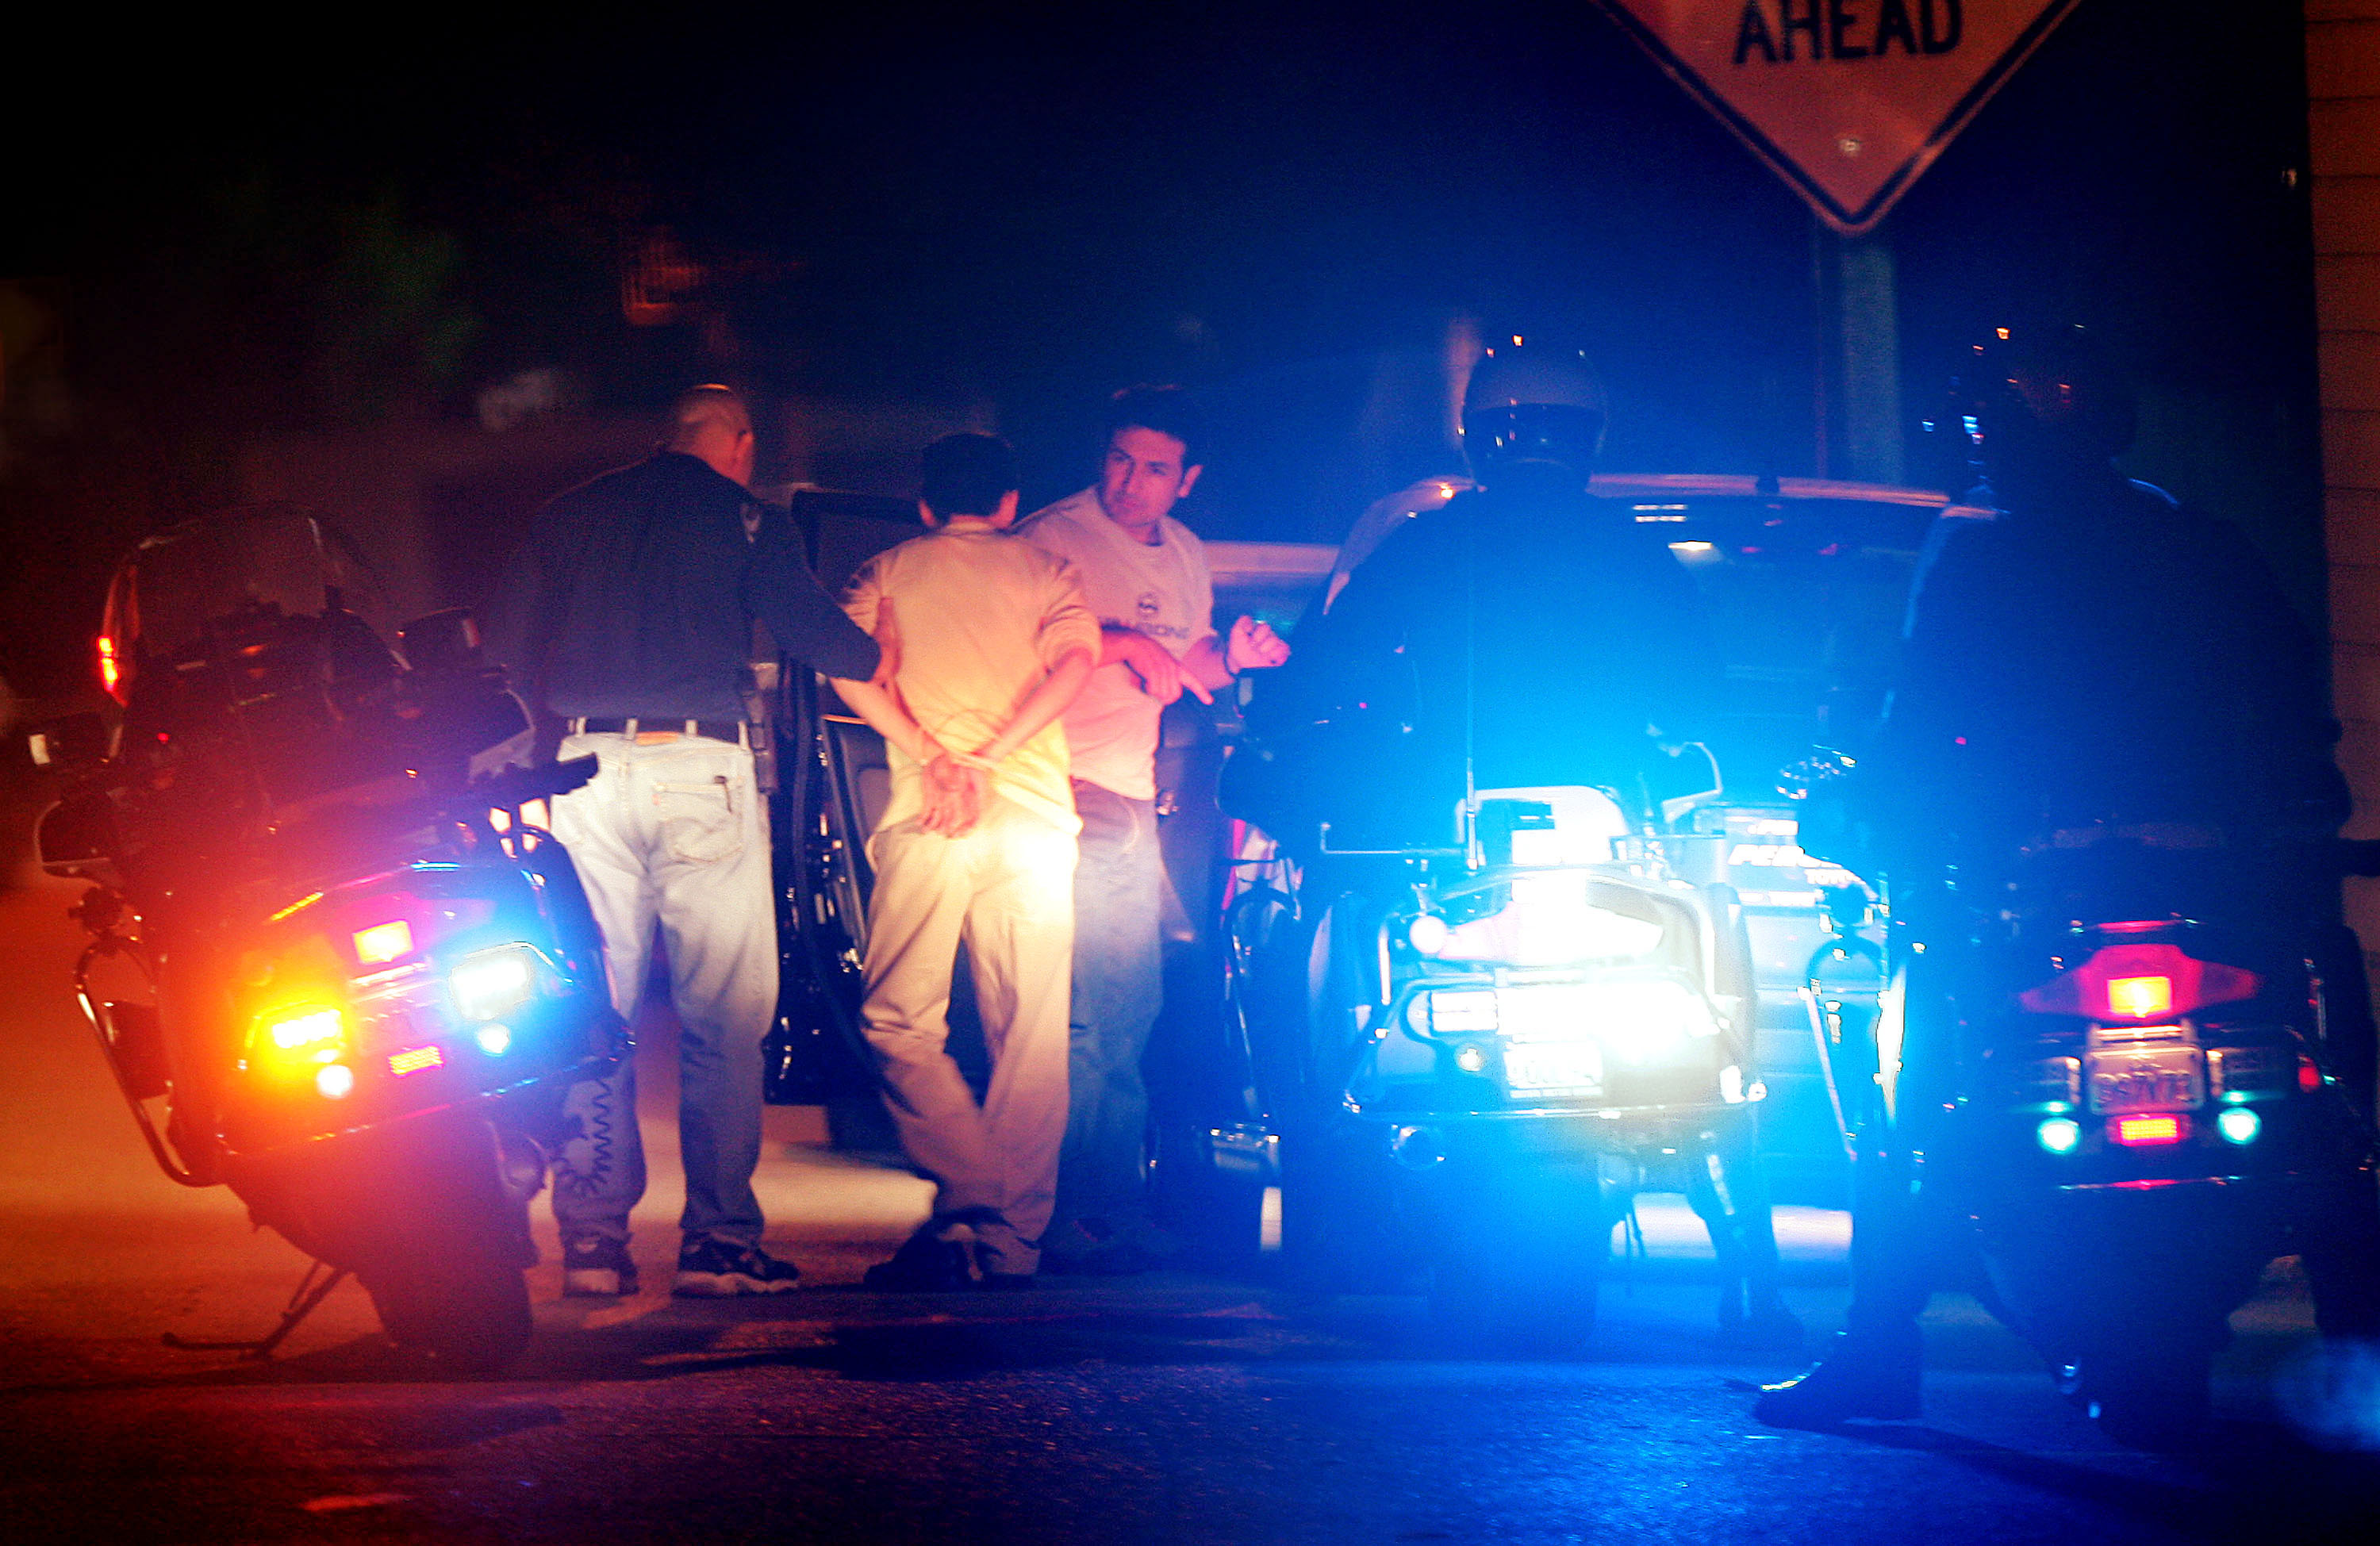 """POMONA, CA - NOVEMBER 12: A man is arrested by police after he stopped his car to talk to a female police officer posing as a prostitute on Holt Boulevard, known to sex workers throughout southern California as """"the track"""", during a major prostitution sting operation November 12, 2004 in Pomona, California. Approximately 60 to 80 men are arrested each night during the sting operations. Cars driven by the arrested men are seized and become city property until a $1000 fine is paid. Each vehicle is then labeled with a large window sticker stating that the car was ?seized for solicitation of prostitution? and the photos of the men appear in a full-page ad in the local newspaper. (Photo by David McNew/Getty Images)"""